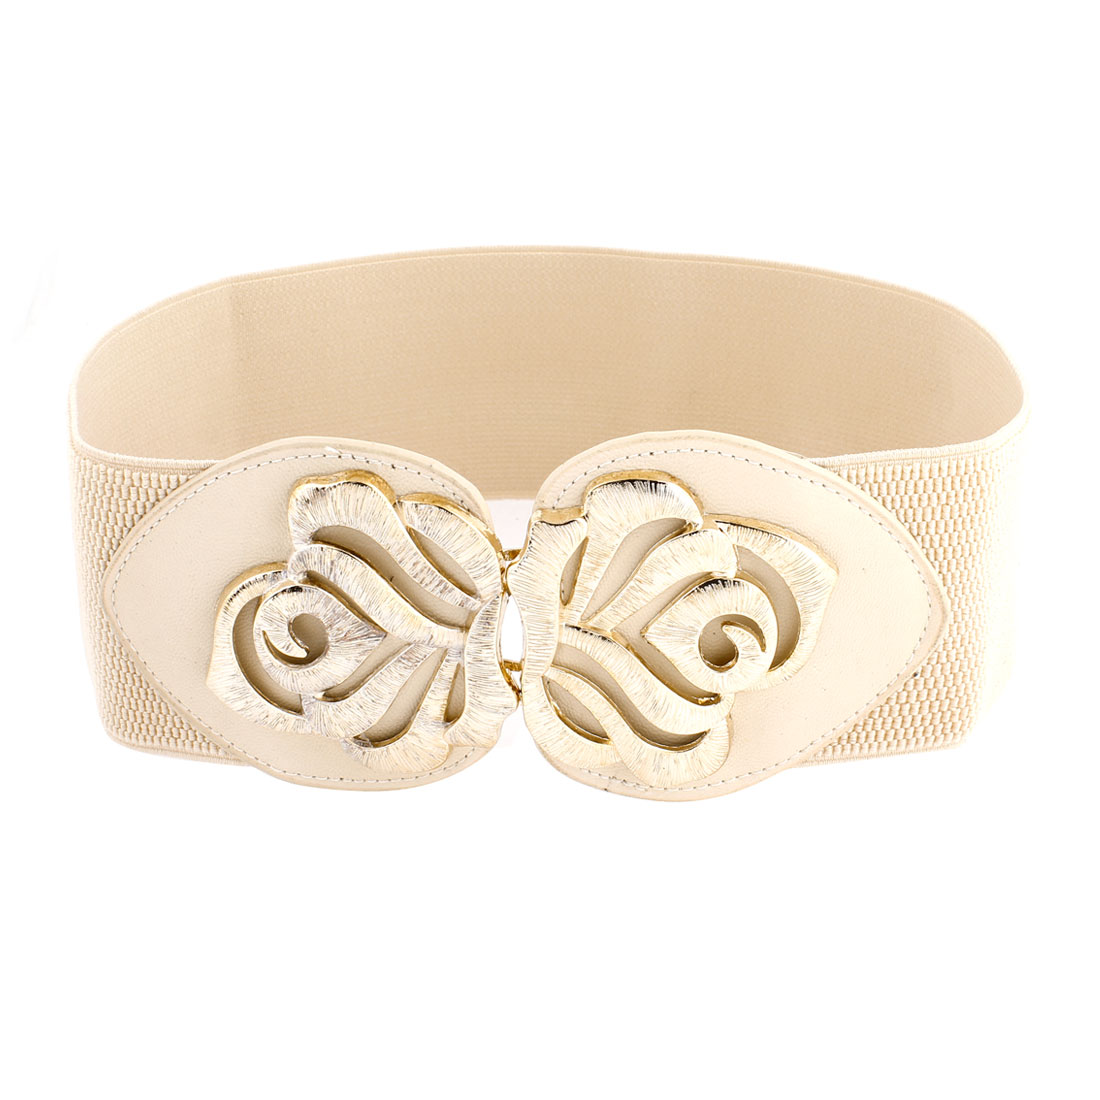 Ladies-Gold-Tone-Flower-Decor-Interlocking-Buckle-Elastic-Waist-Belt-Beige